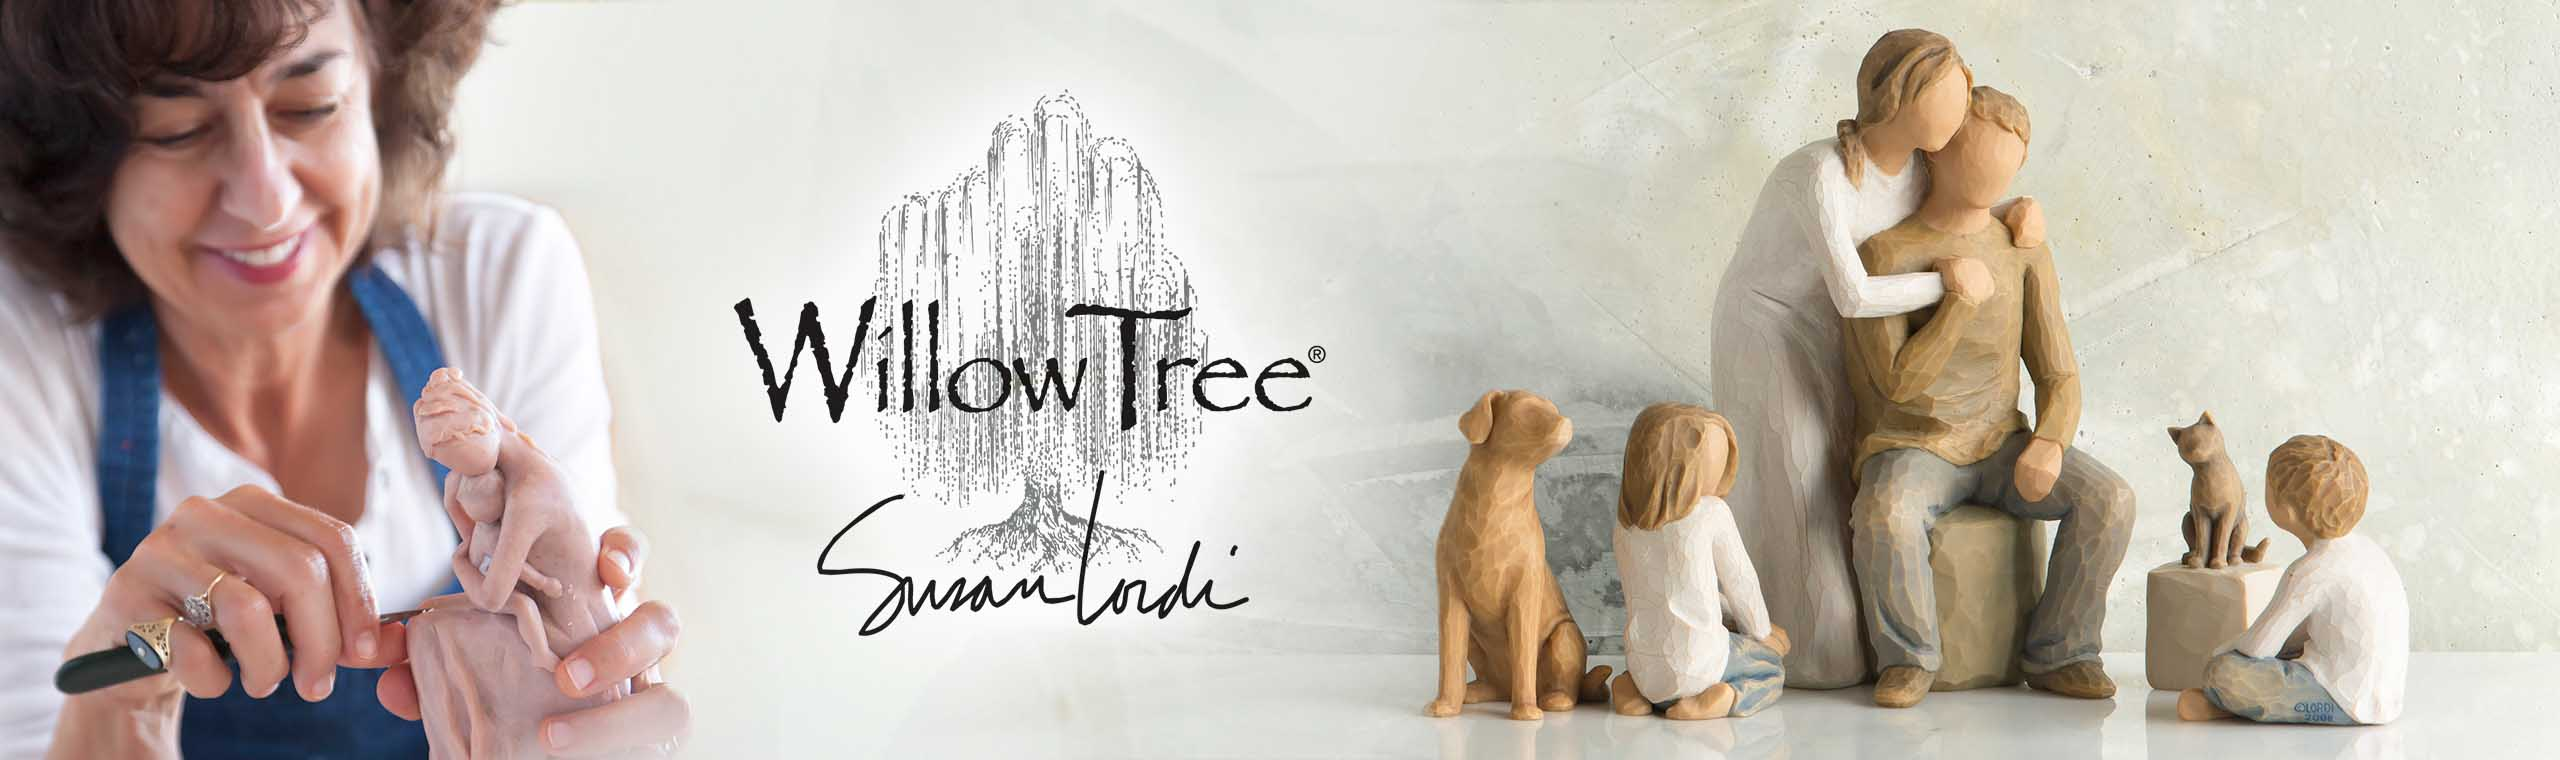 Susan Lordi hand-carving clay figure, Willow Tree and Susan Lordi hand signature, and family of hand-painted figurines